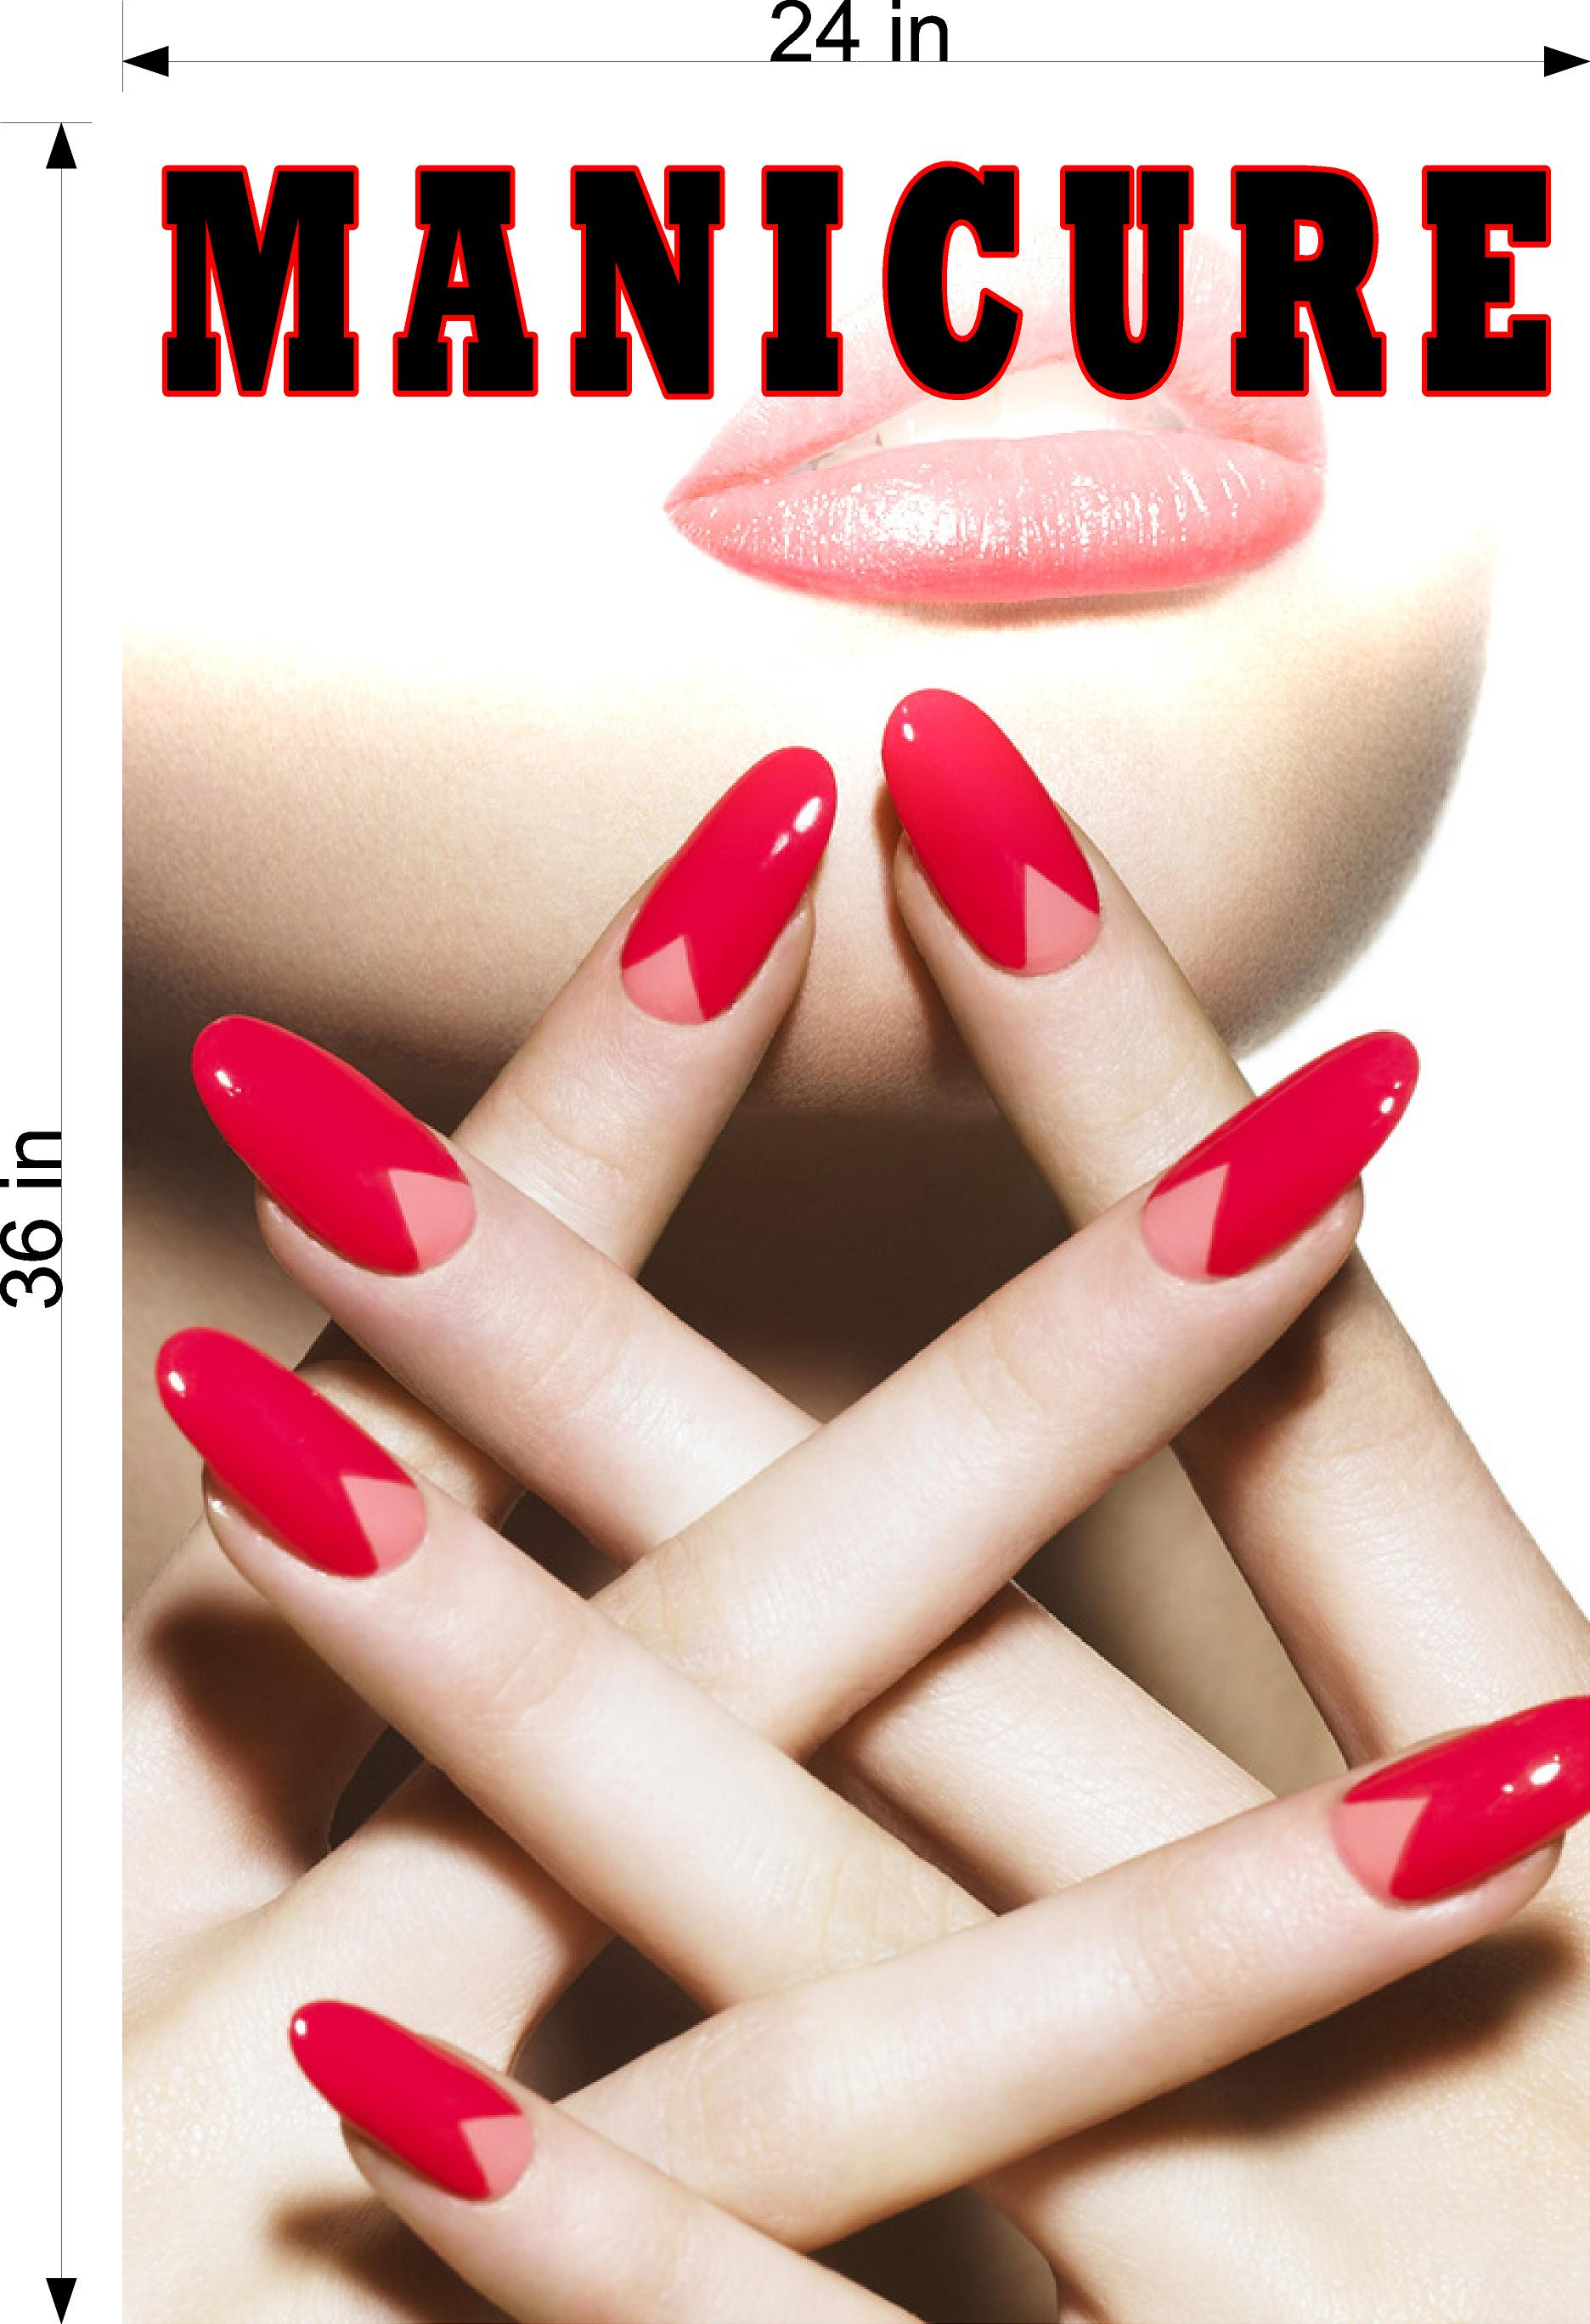 Manicure 14 Perforated Mesh One Way Vision See-Through Window Vinyl Nail Salon Sign Vertical